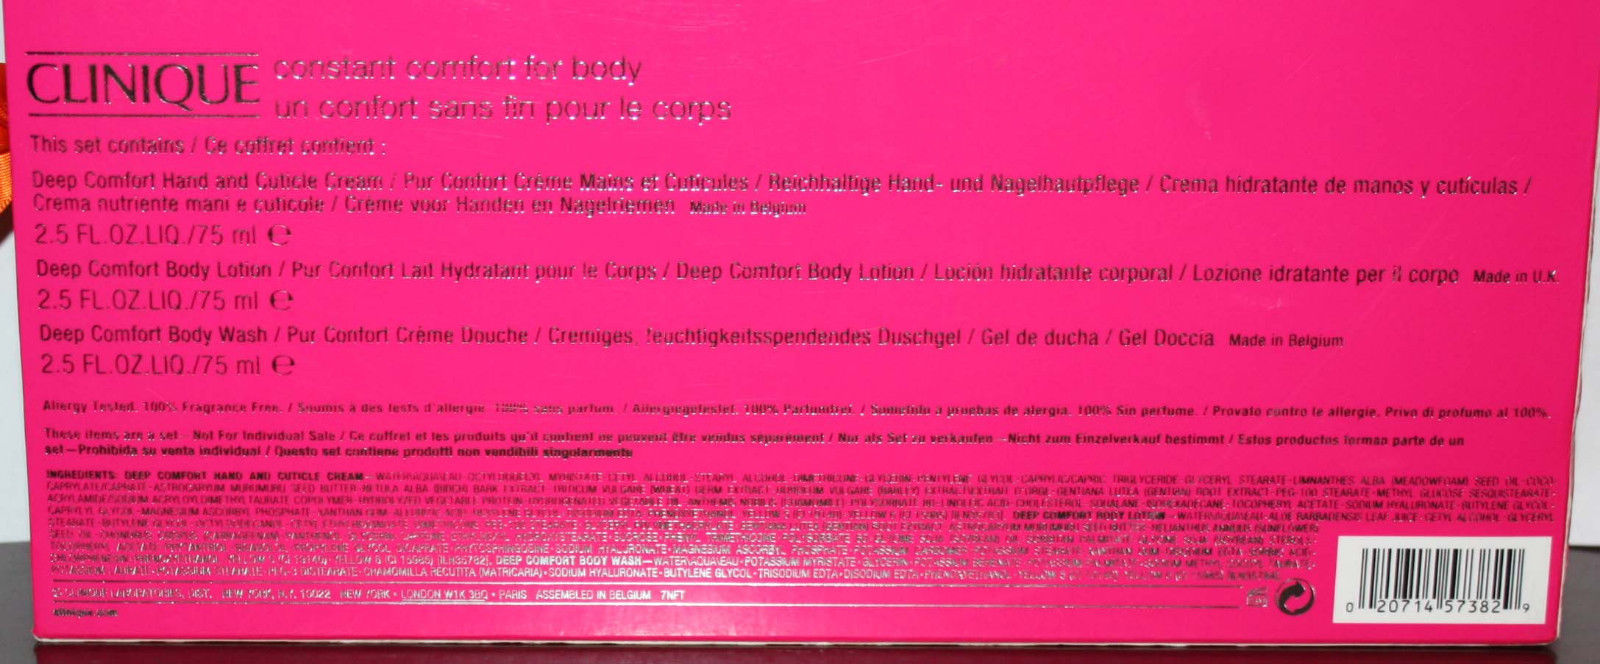 Info on back of packaging